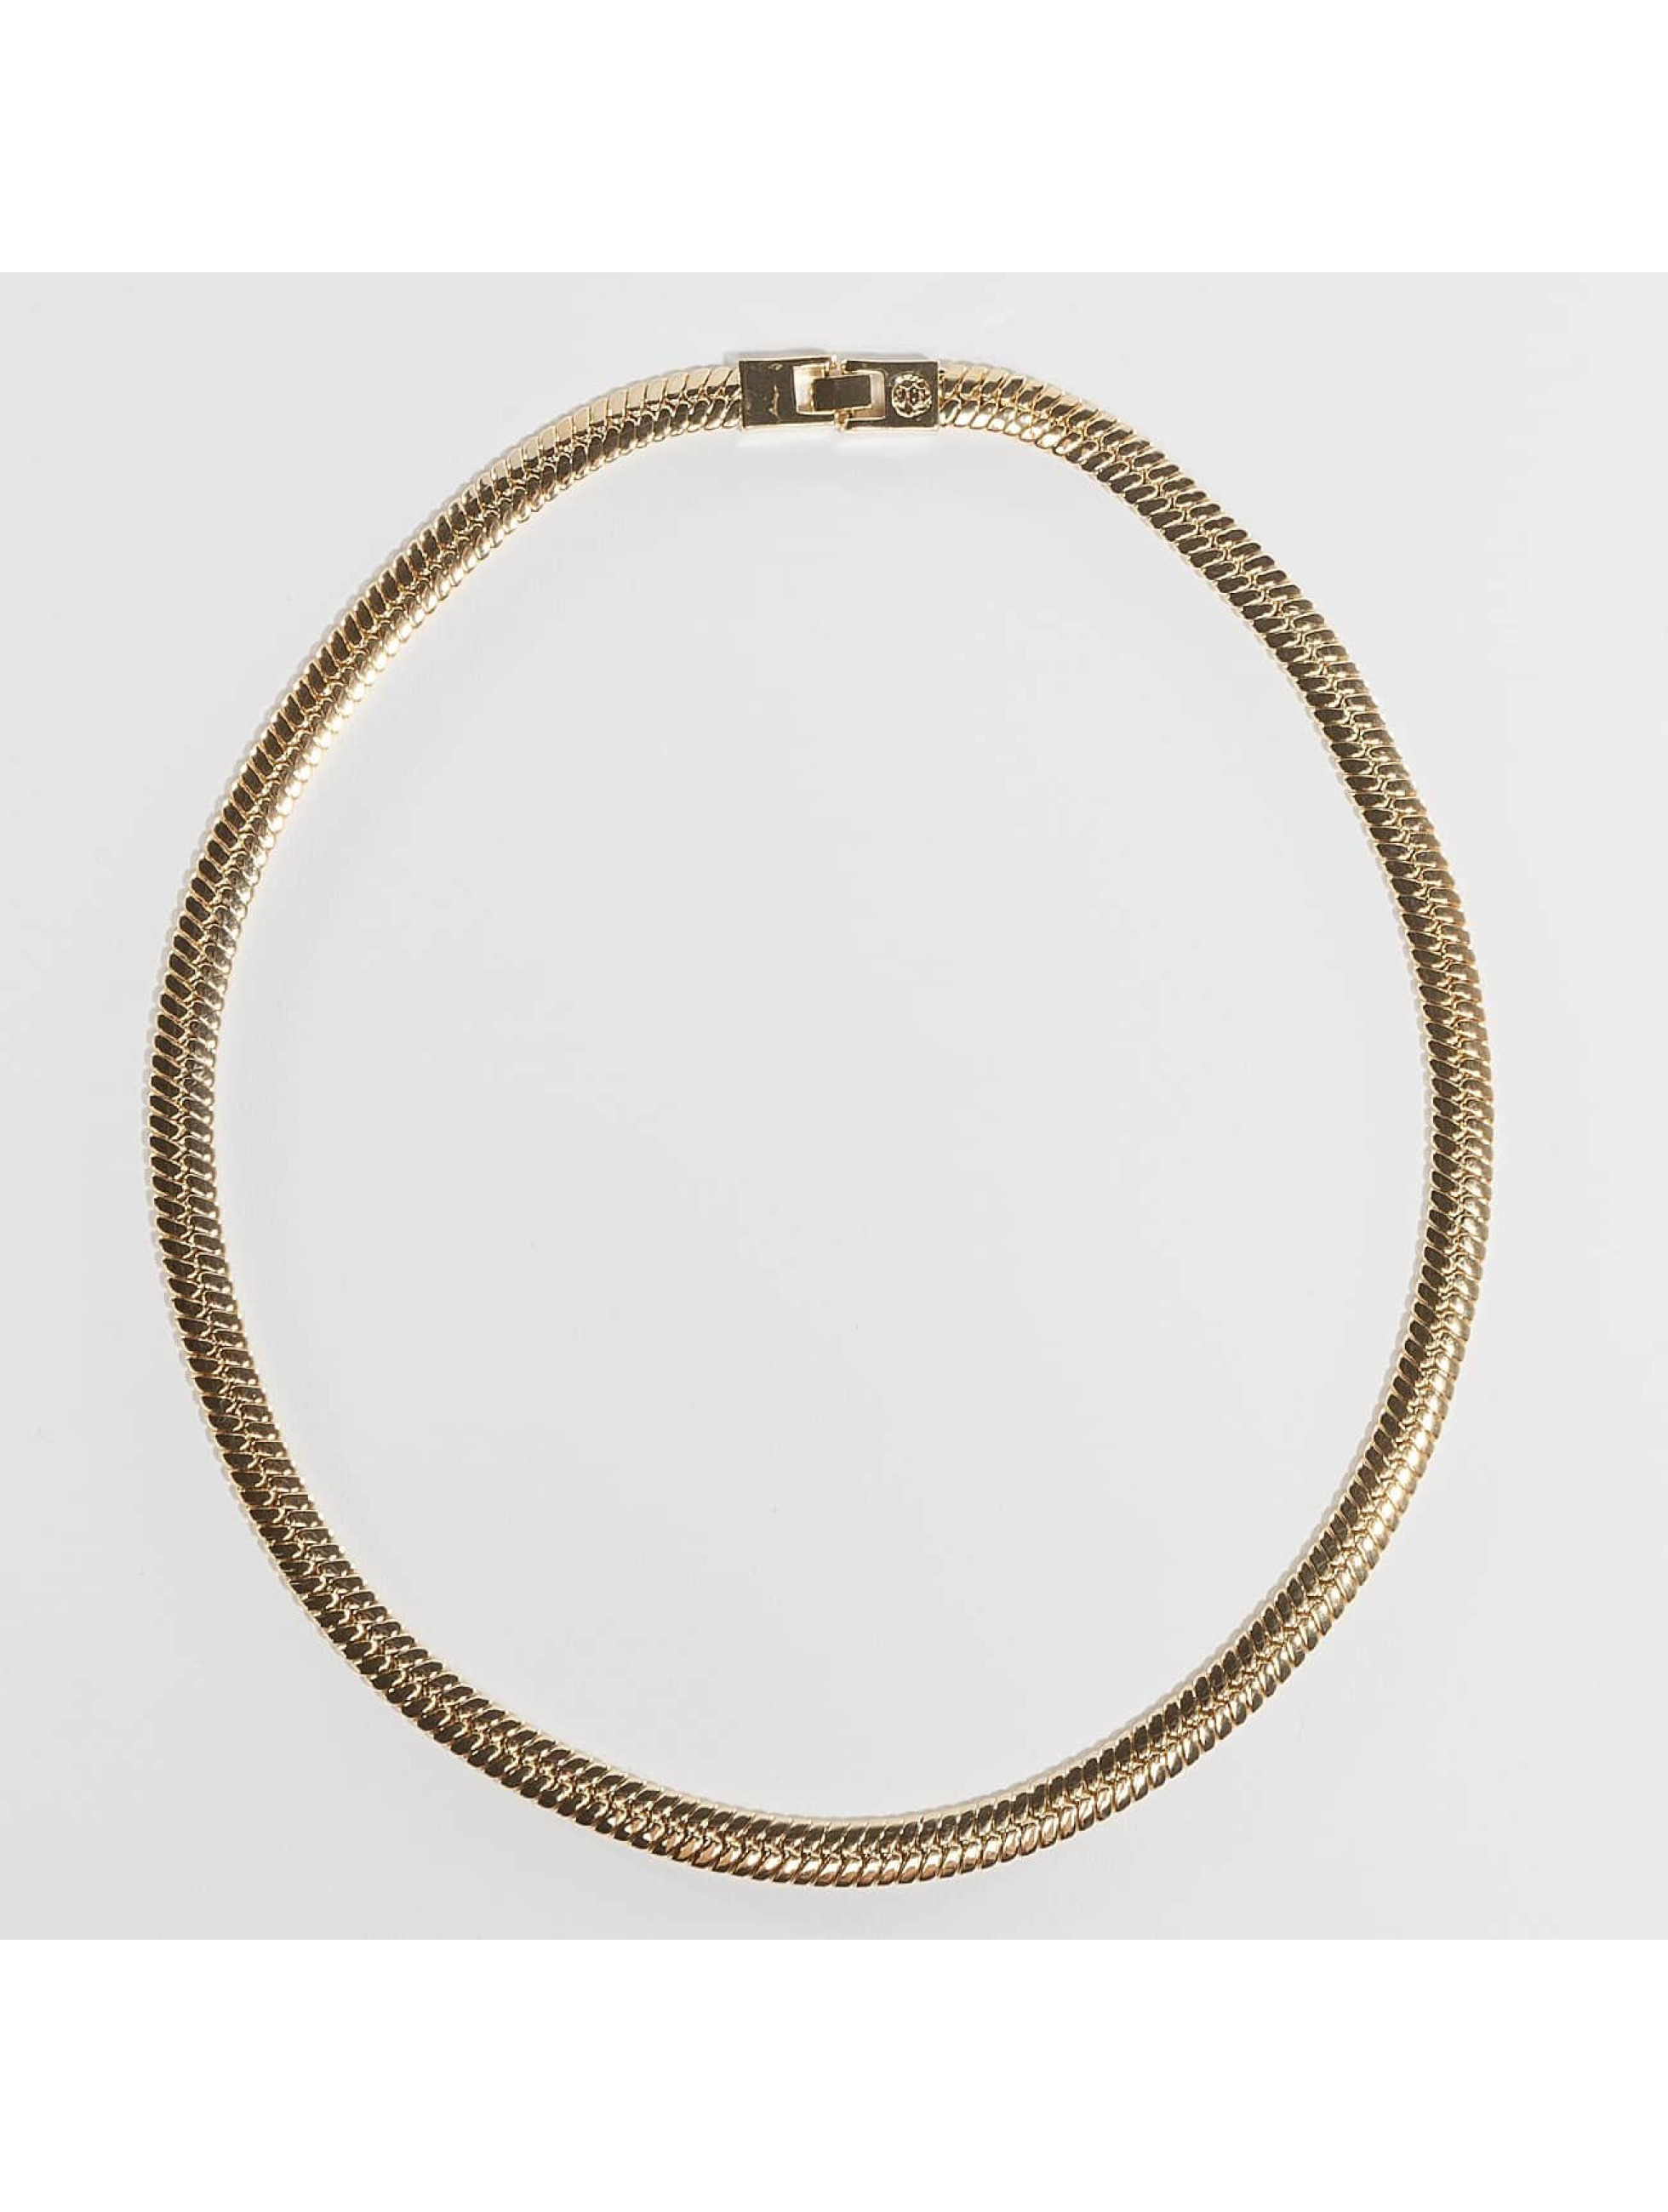 KING ICE Necklace Gold_Plated 10mm Thick Herringbone gold